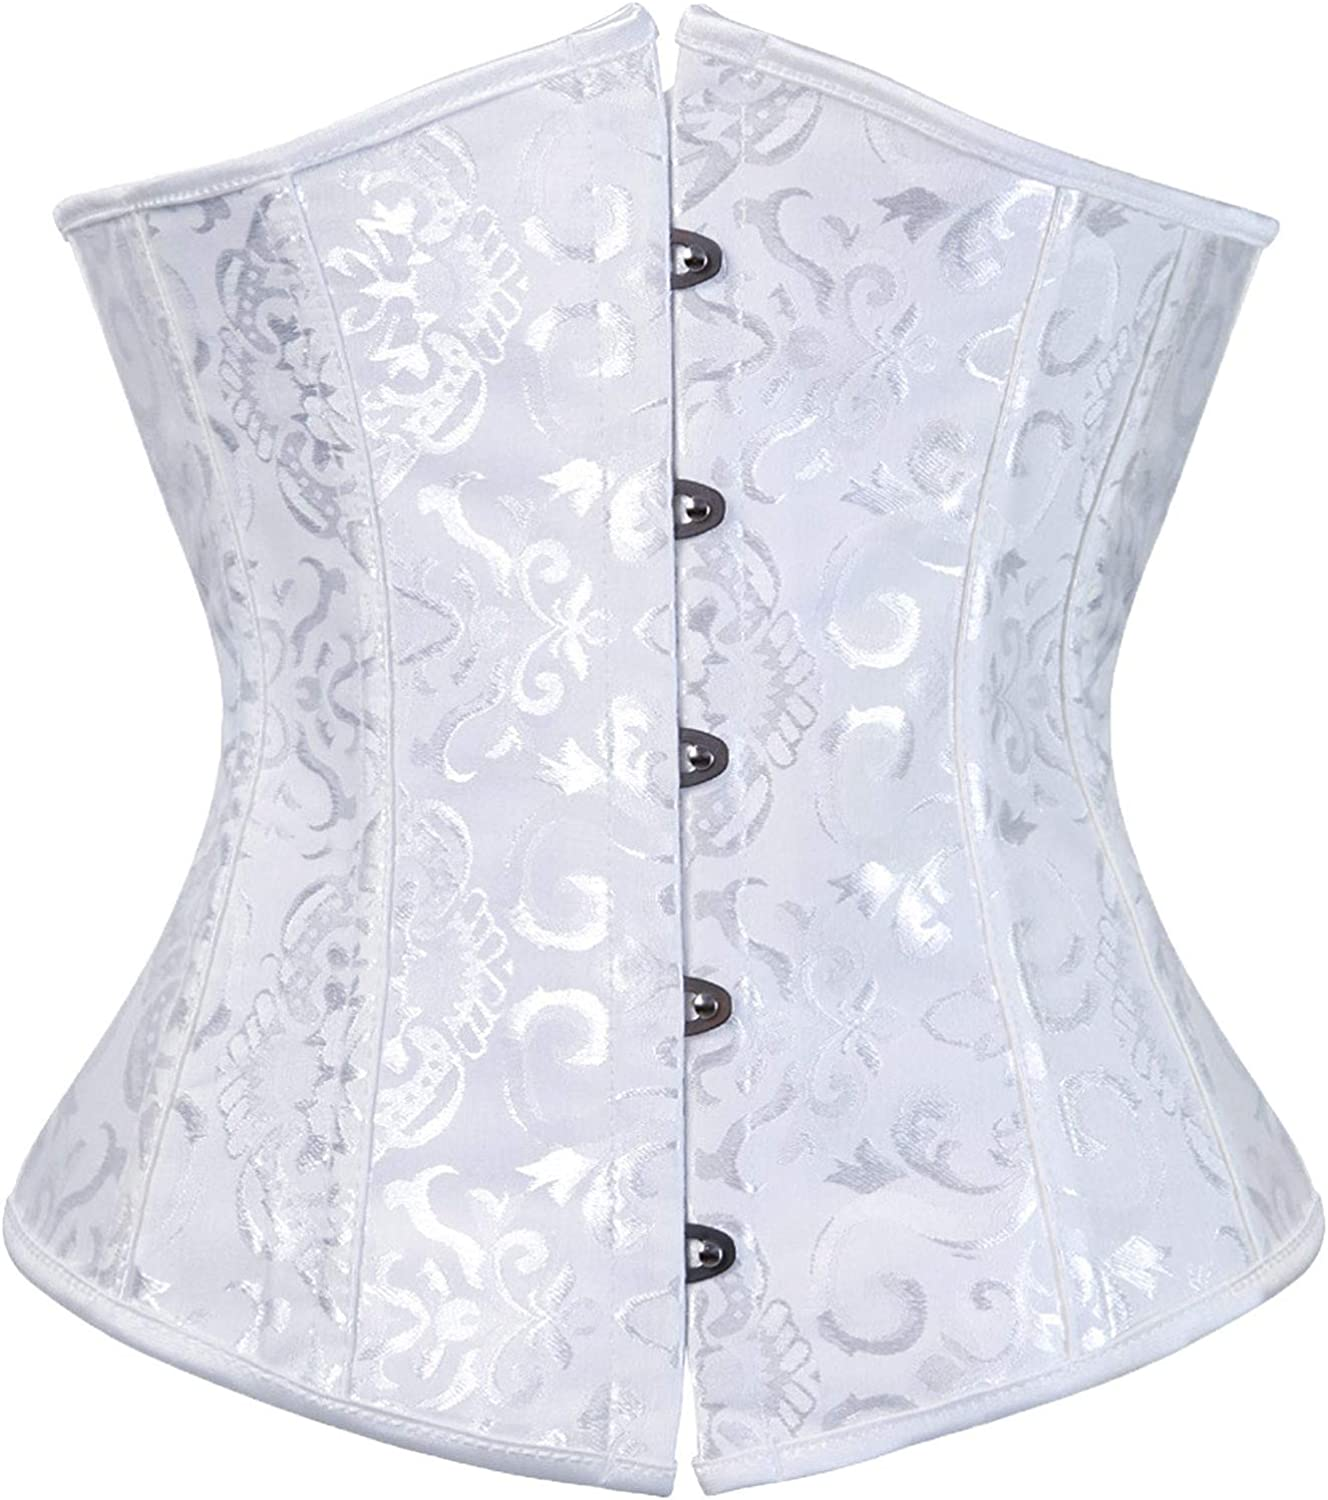 Women's Bustiers Corset Top Plus Size Sexy Corsets Solid Color Tank Top G-String Outfit Body Shapewear Gothic Jacquard Tank